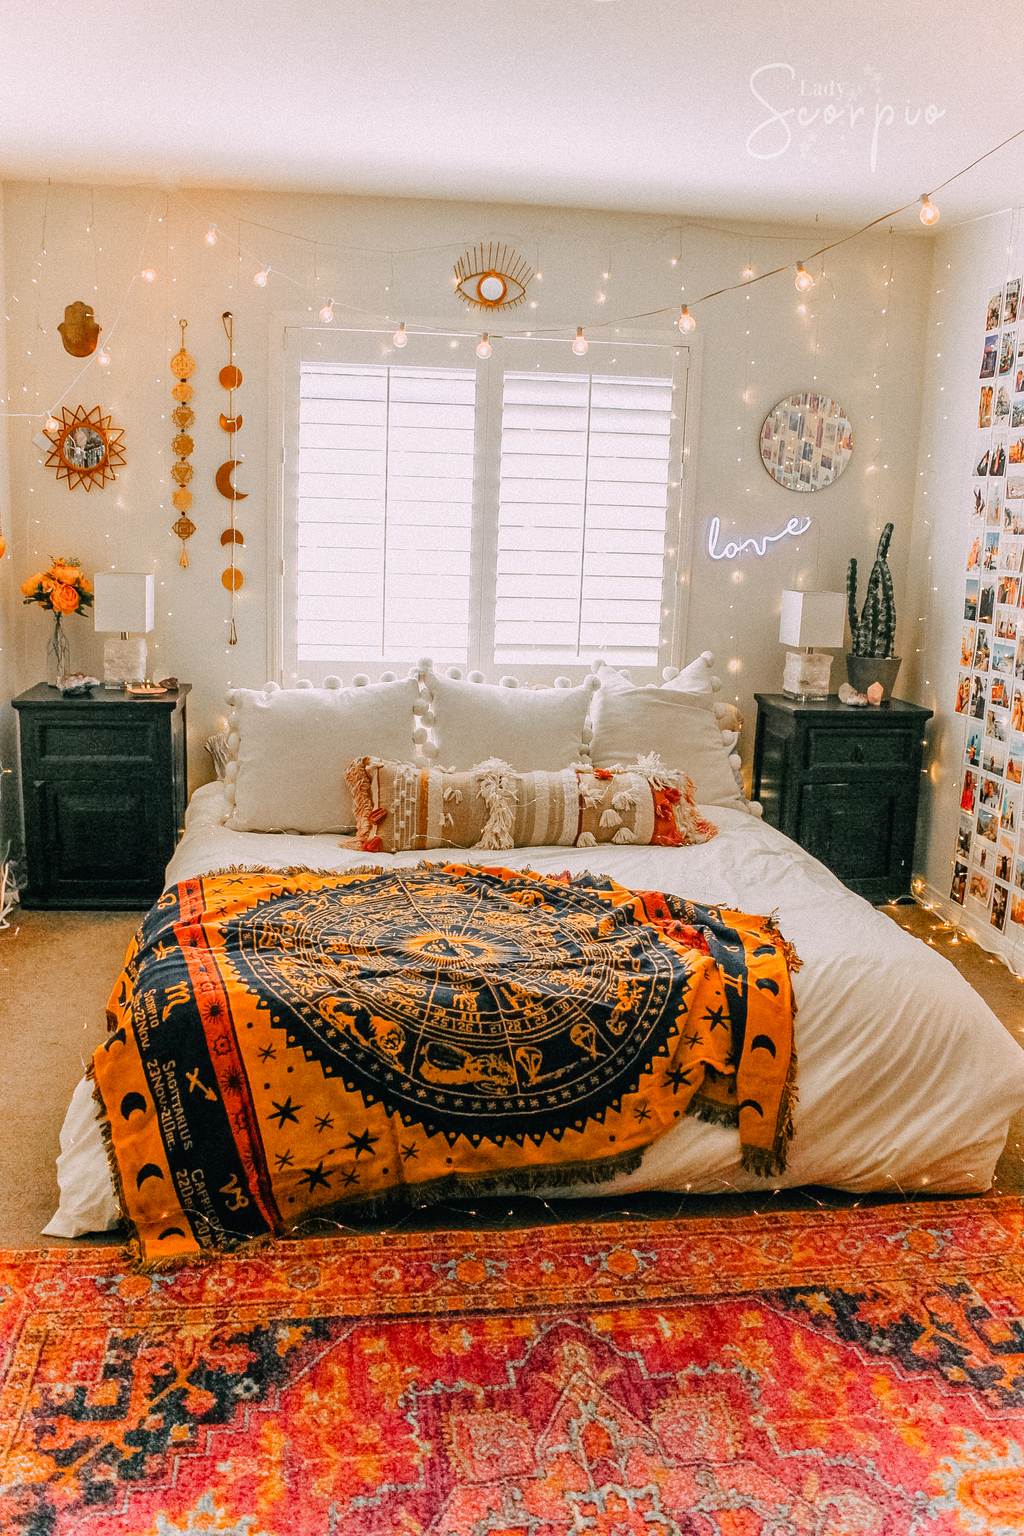 38 beautiful bohemian bedroom decor that you definitely like in 2020 | aesthetic room decor